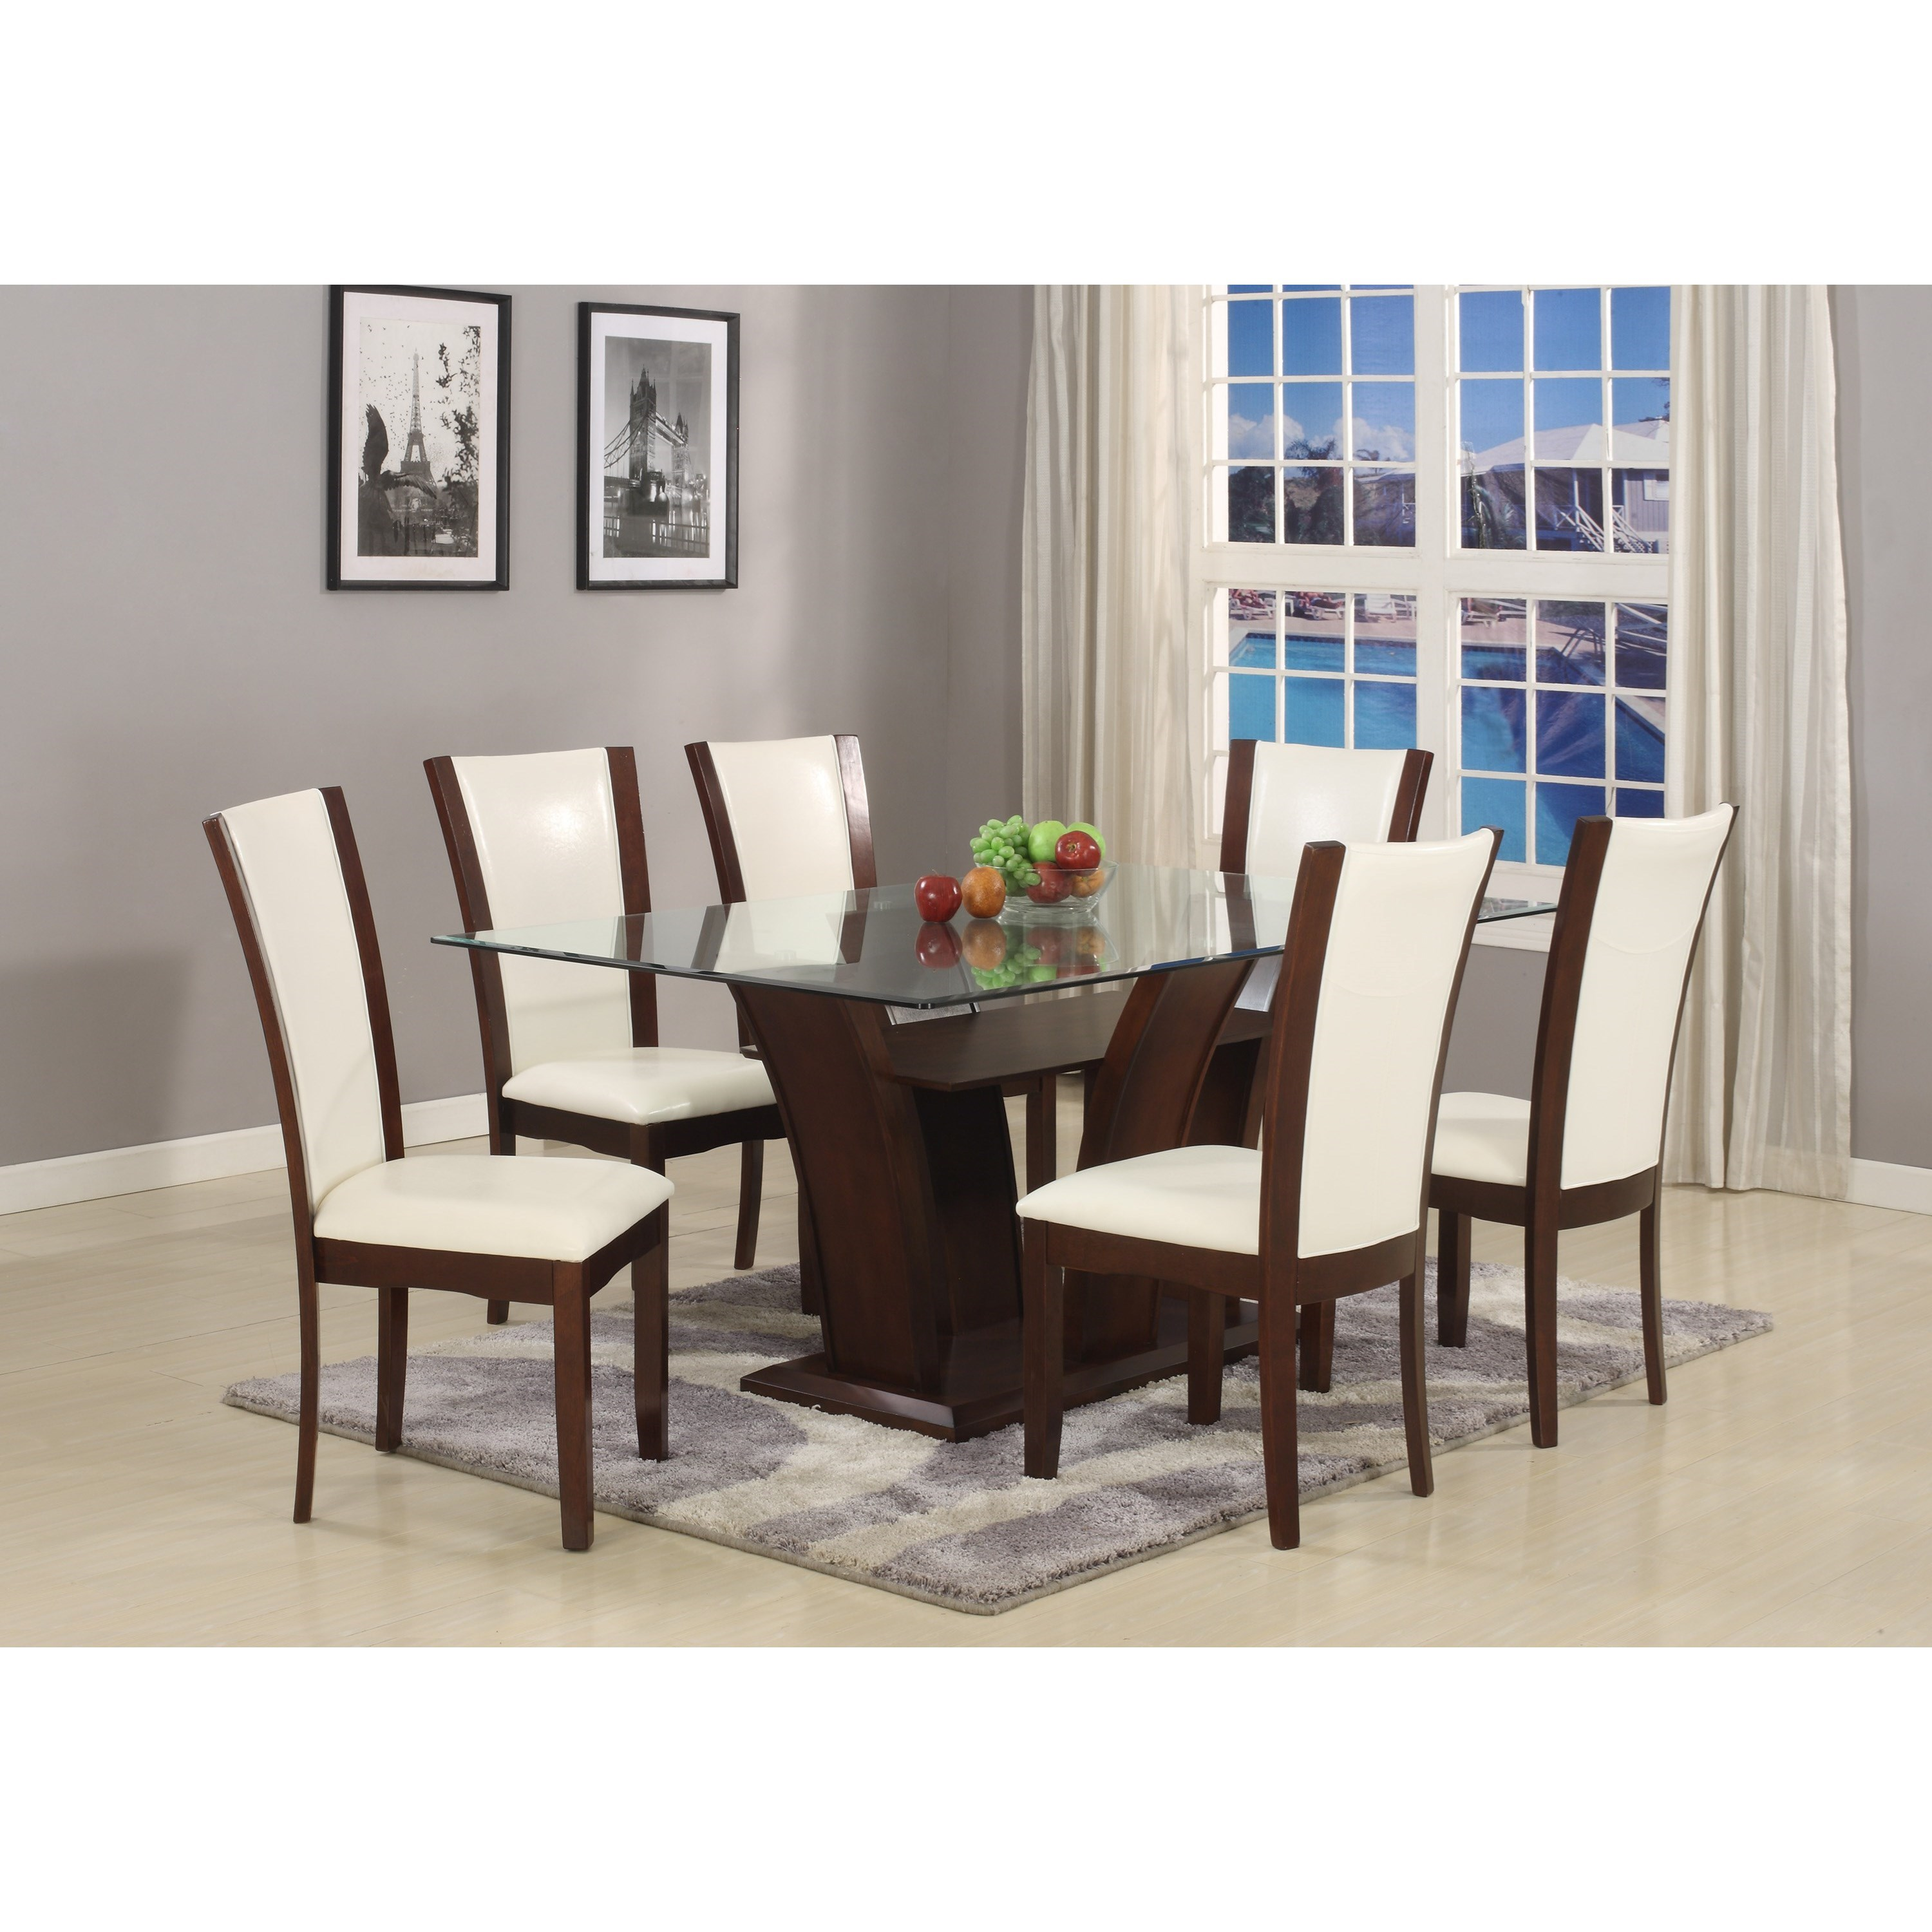 Camelia White 7 Piece Table and Chair Set by Crown Mark at Northeast Factory Direct